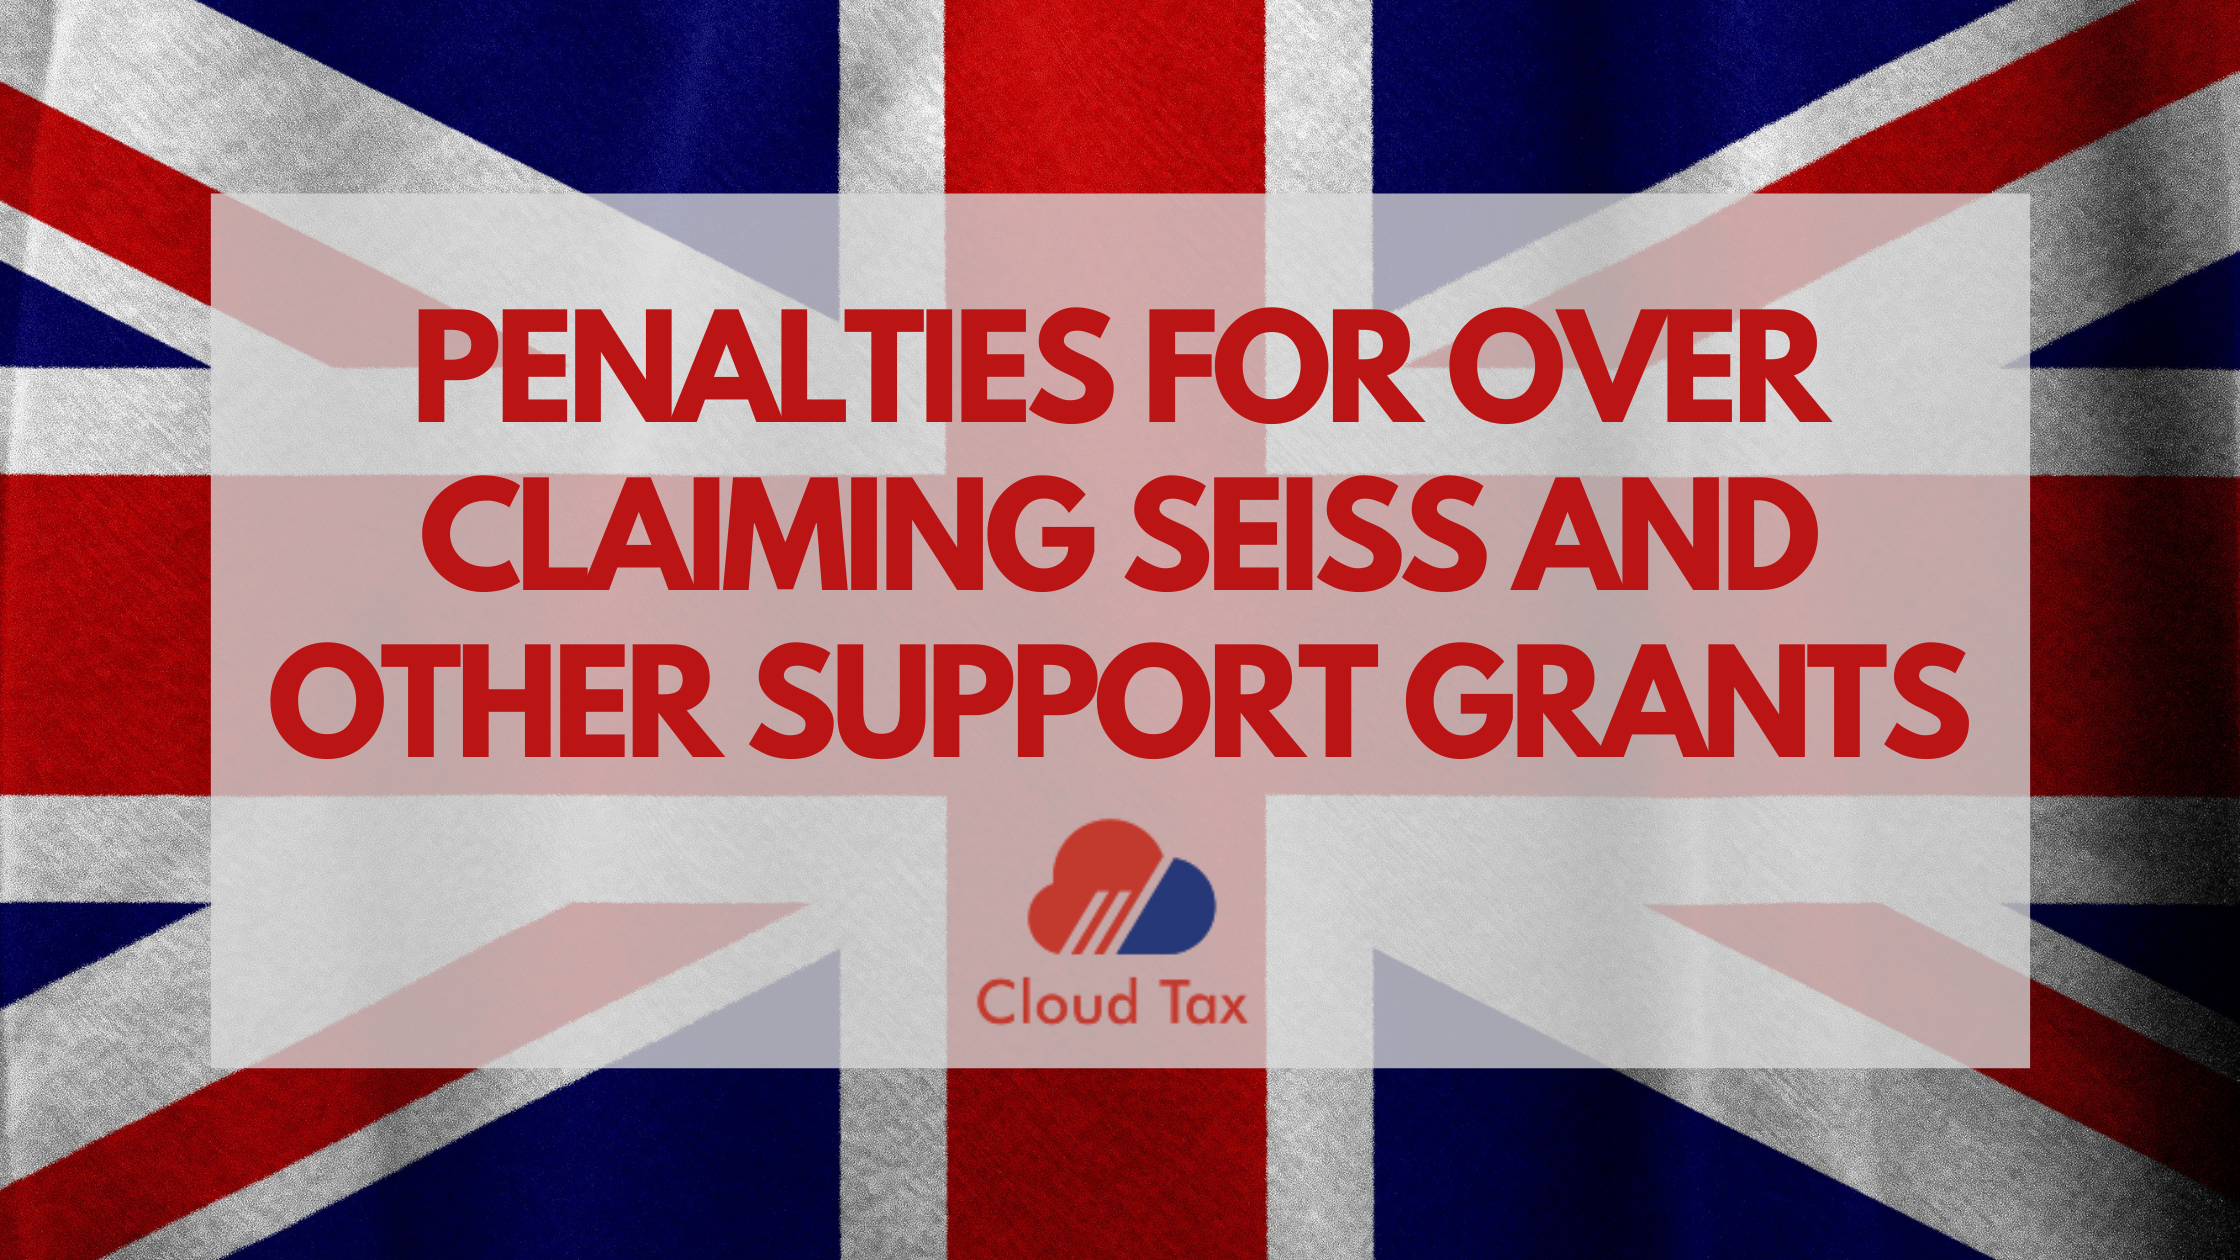 Penalties for over claiming SEISS and other support grants